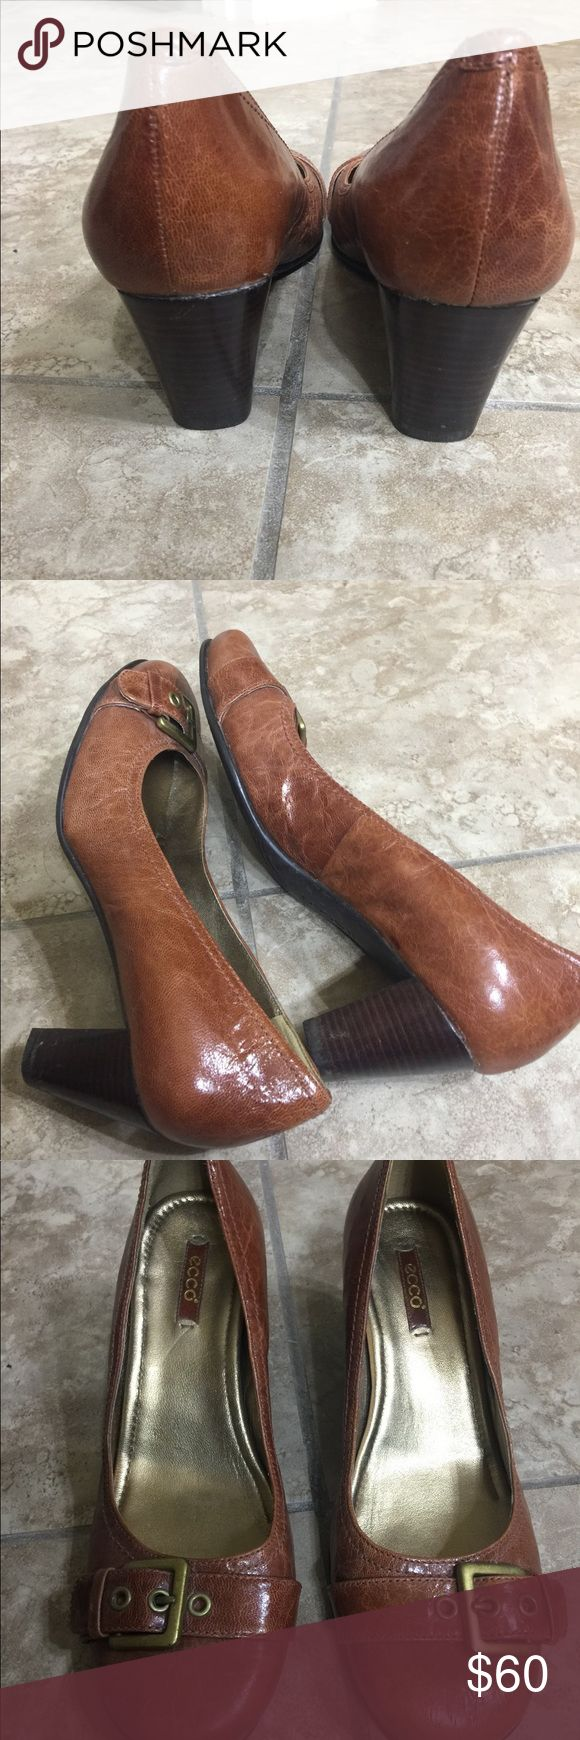 Ecco women brown pumps size 7 Very comfortable, excellent condition, few marks as seen in photo. Worn twice. Ecco Shoes Heels